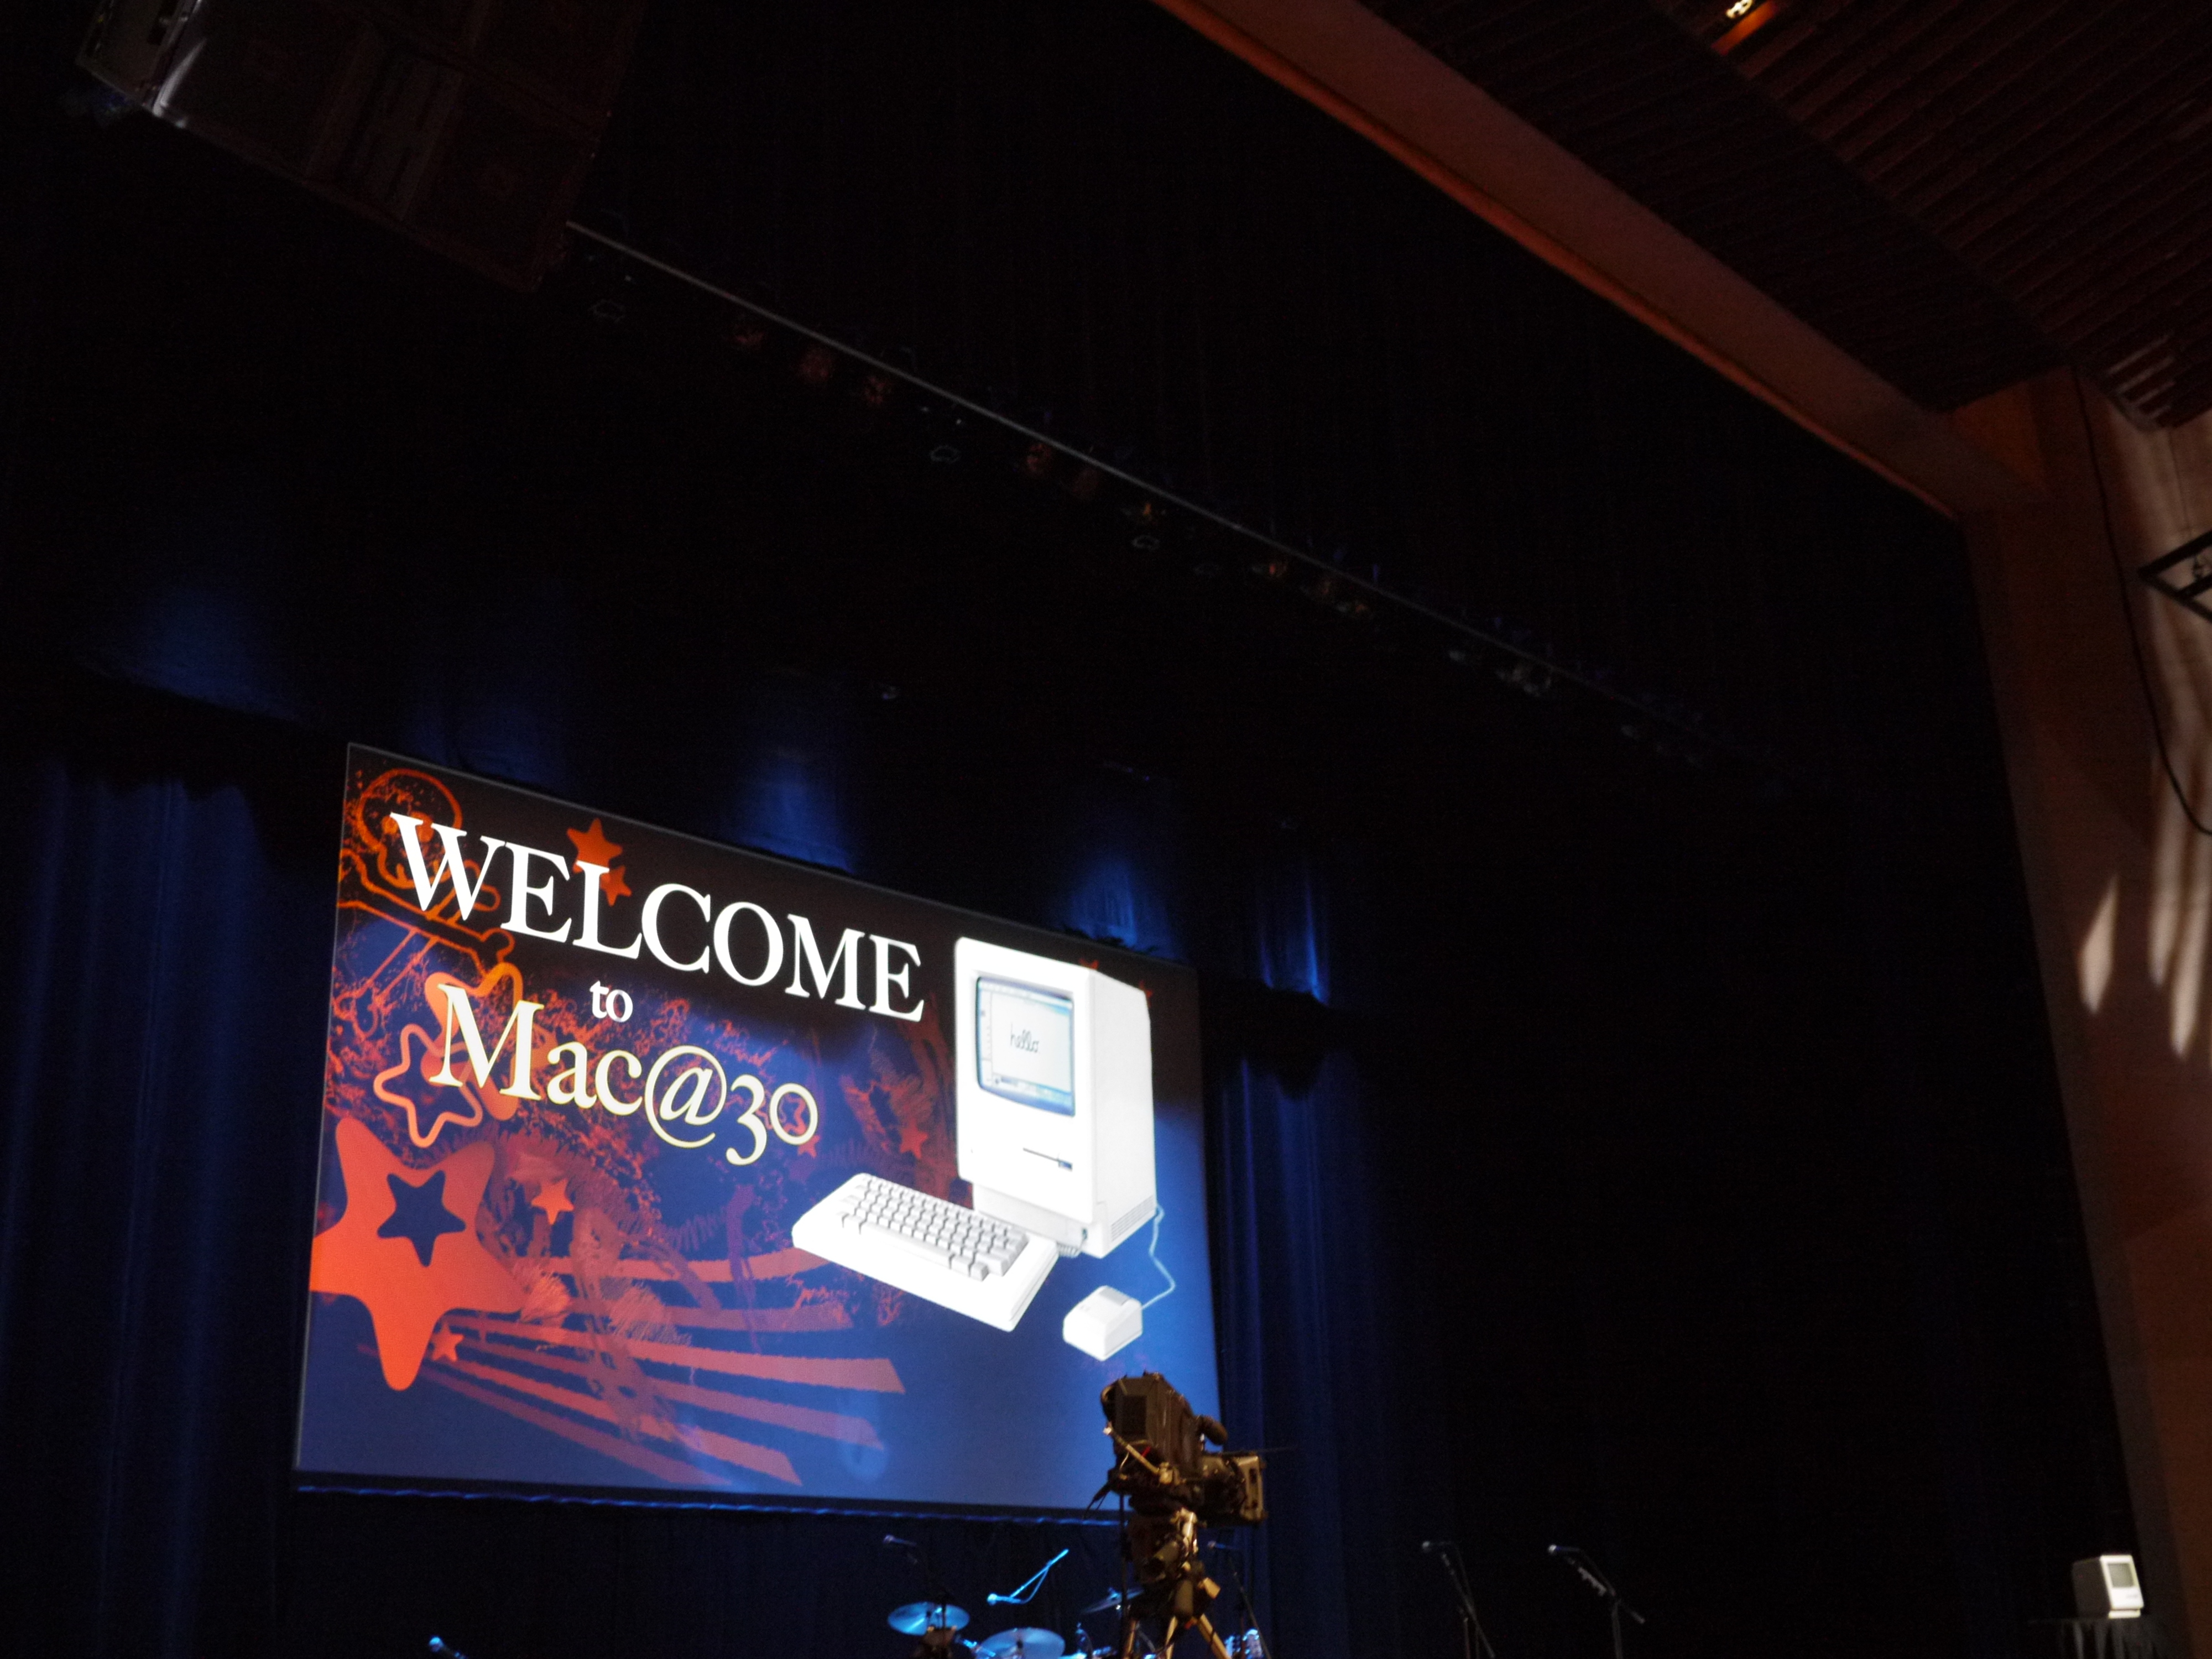 Macintosh originals celebrate the Mac's 30th anniversary